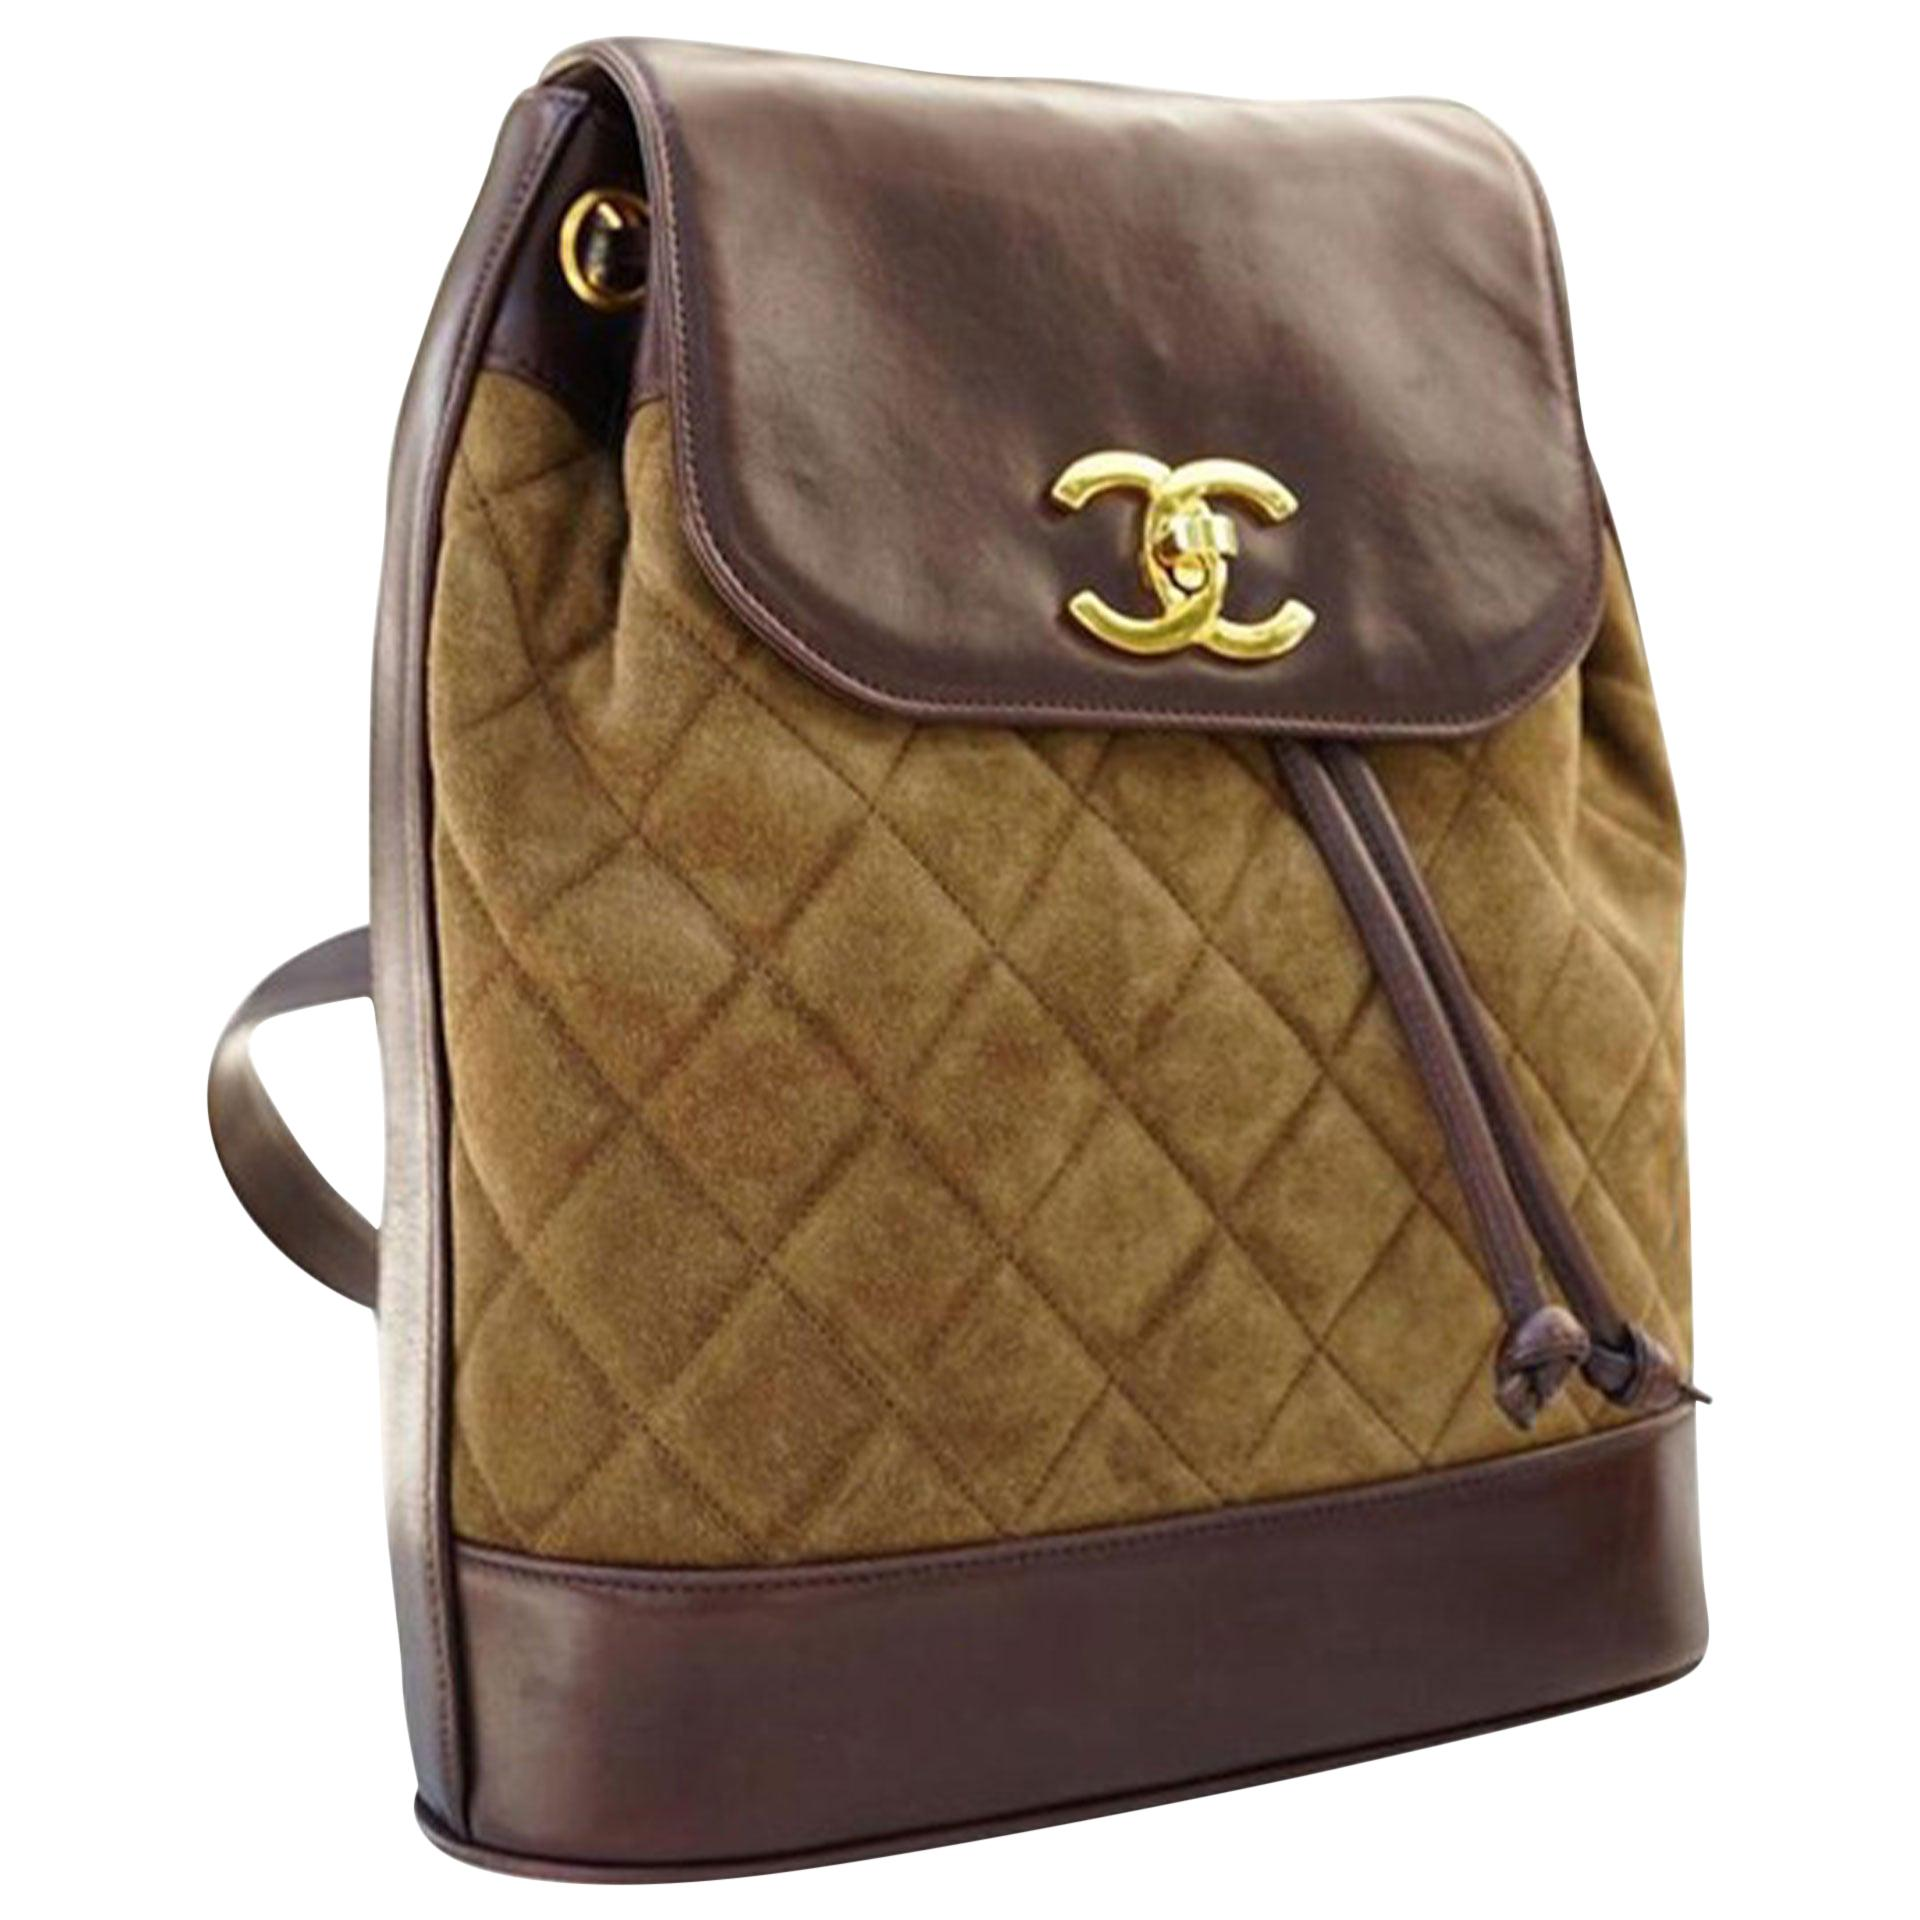 Chanel Rare Vintage 90s Suede Lambskin Olive and Brown Leather Backpack